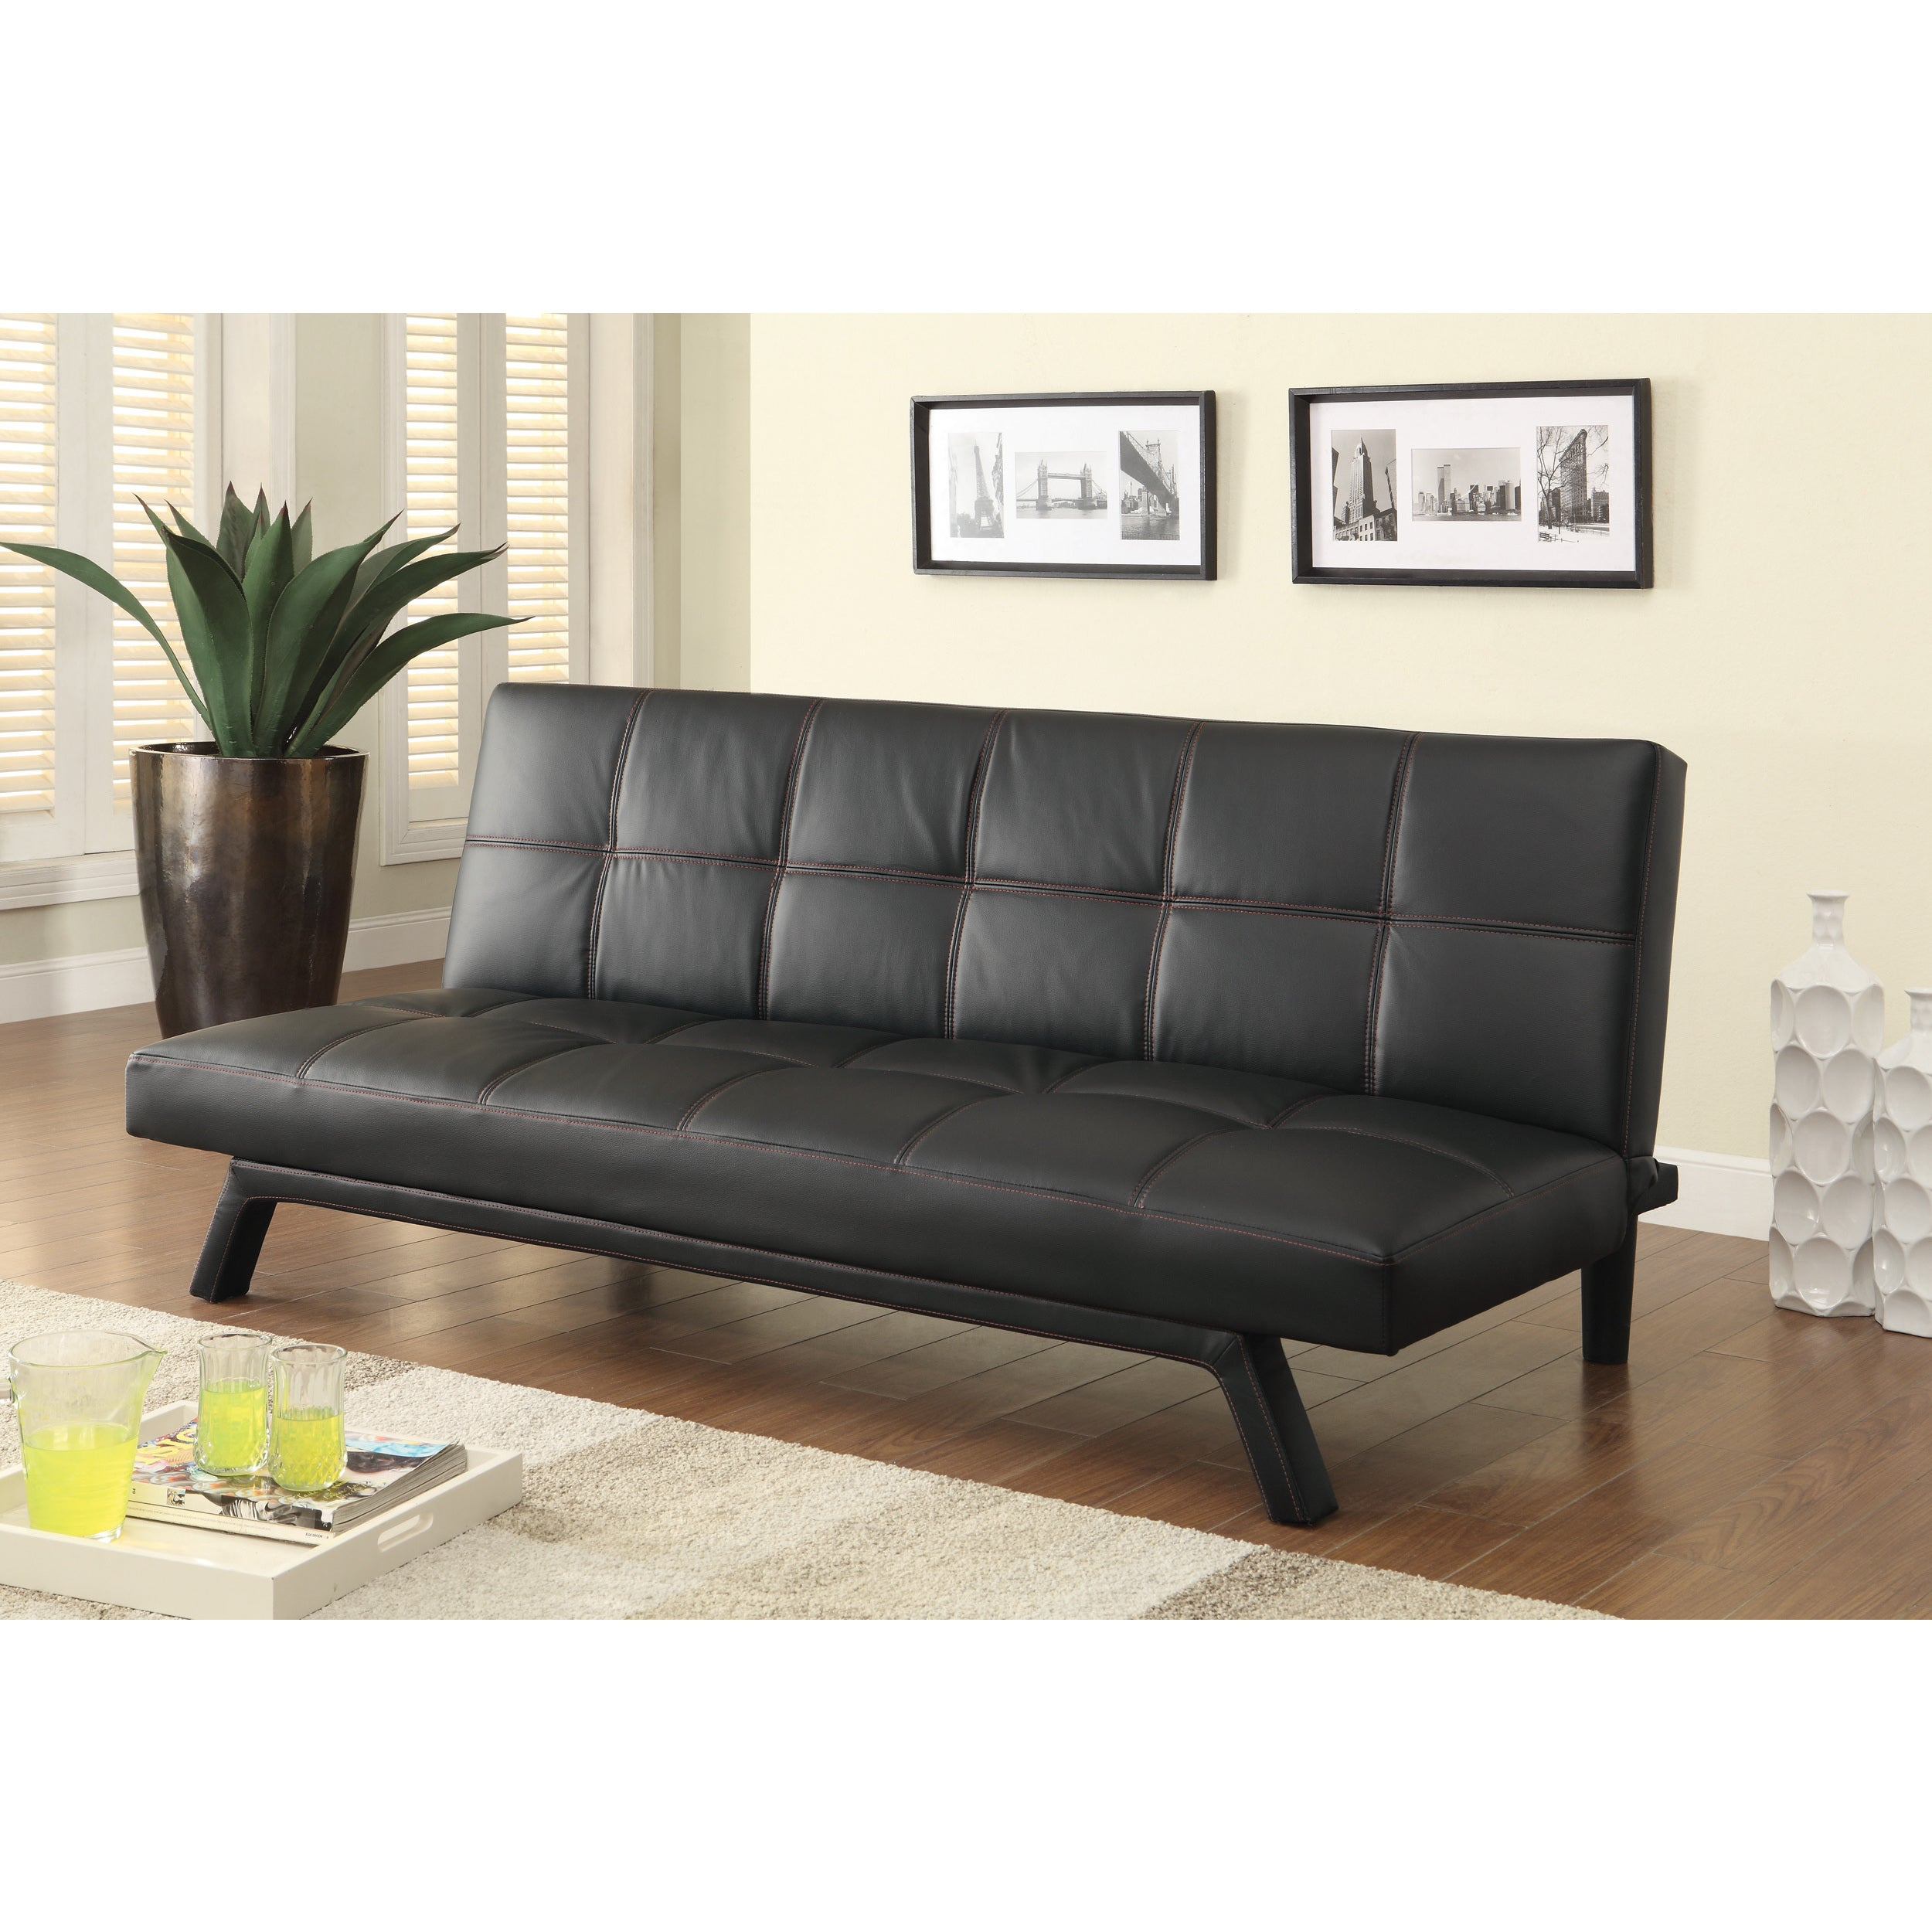 Incredible Details About Coaster Company Black Red Leatherette Sofa Bed Black Red Caraccident5 Cool Chair Designs And Ideas Caraccident5Info